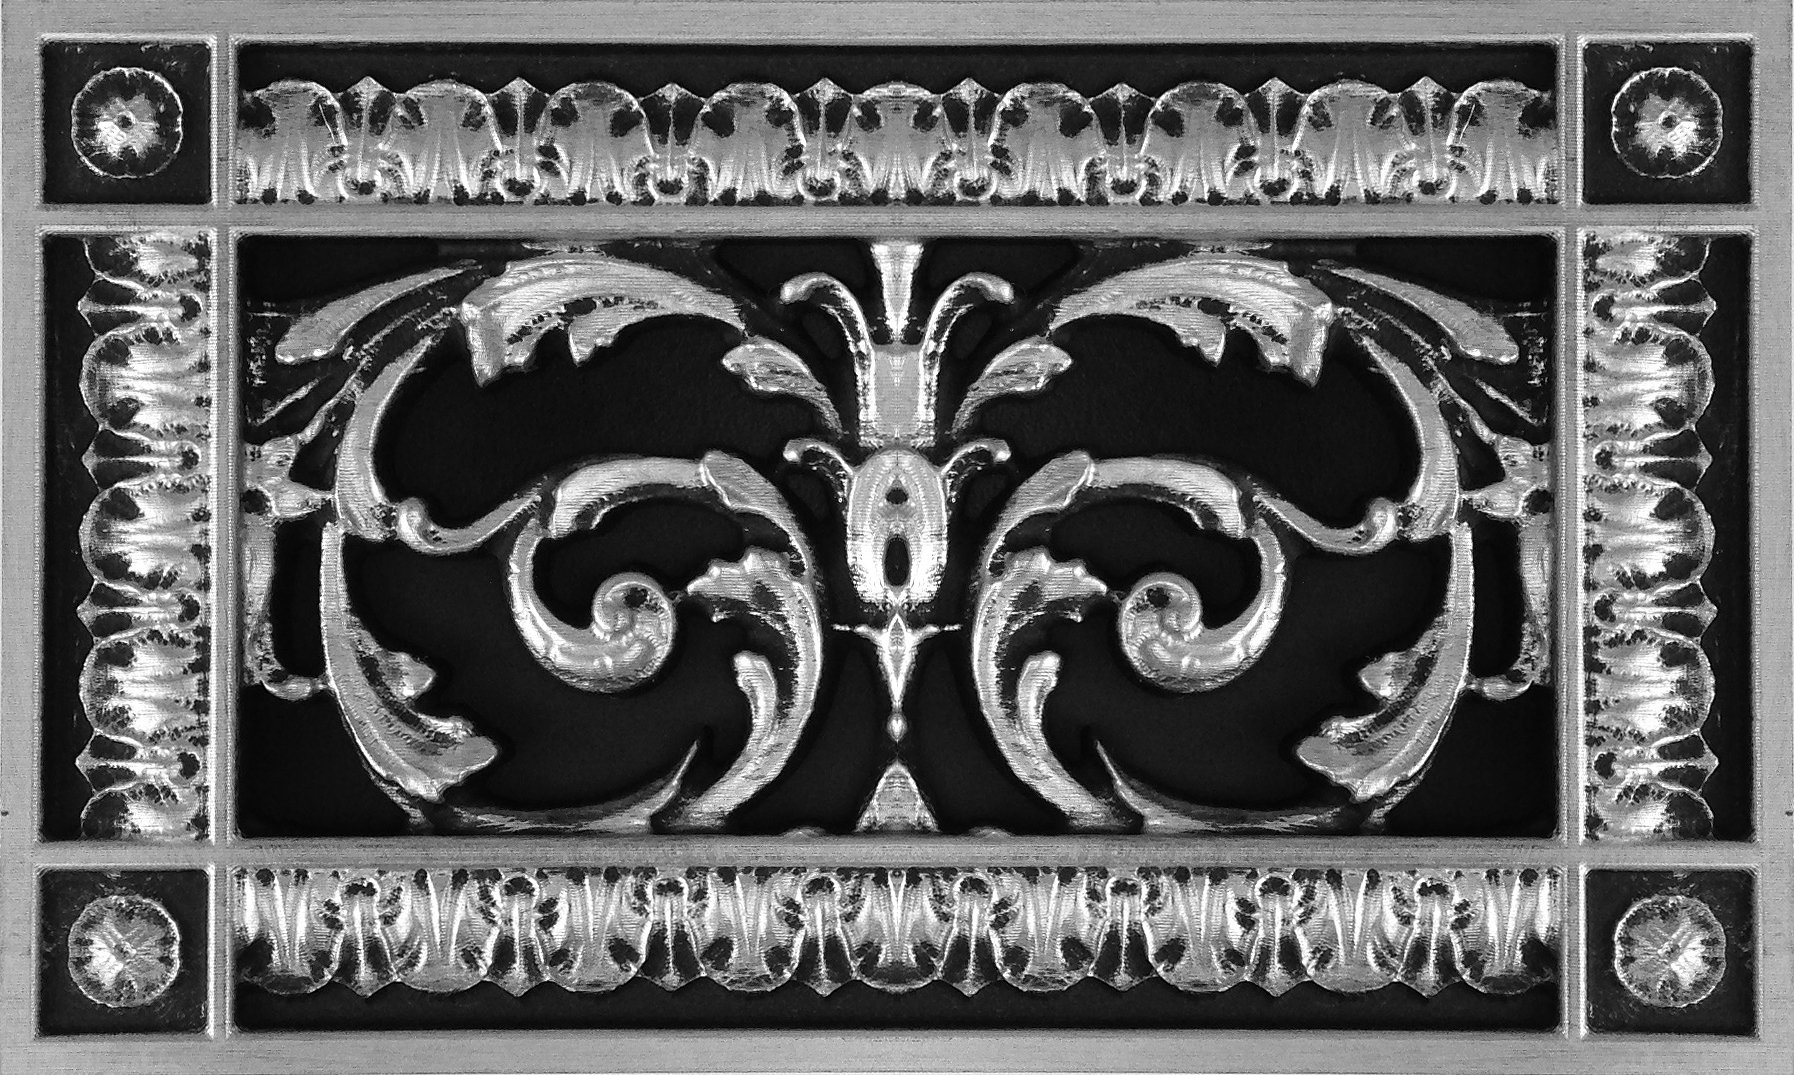 """Decorative Vent Cover, Grille, Return Register, Made of Urethane Resin, in French Style fits Over a 4""""x 8"""" Duct Opening. Total Size, 6"""" x 10"""", Walls & Ceilings use only(not for Floors) (Nickel)"""